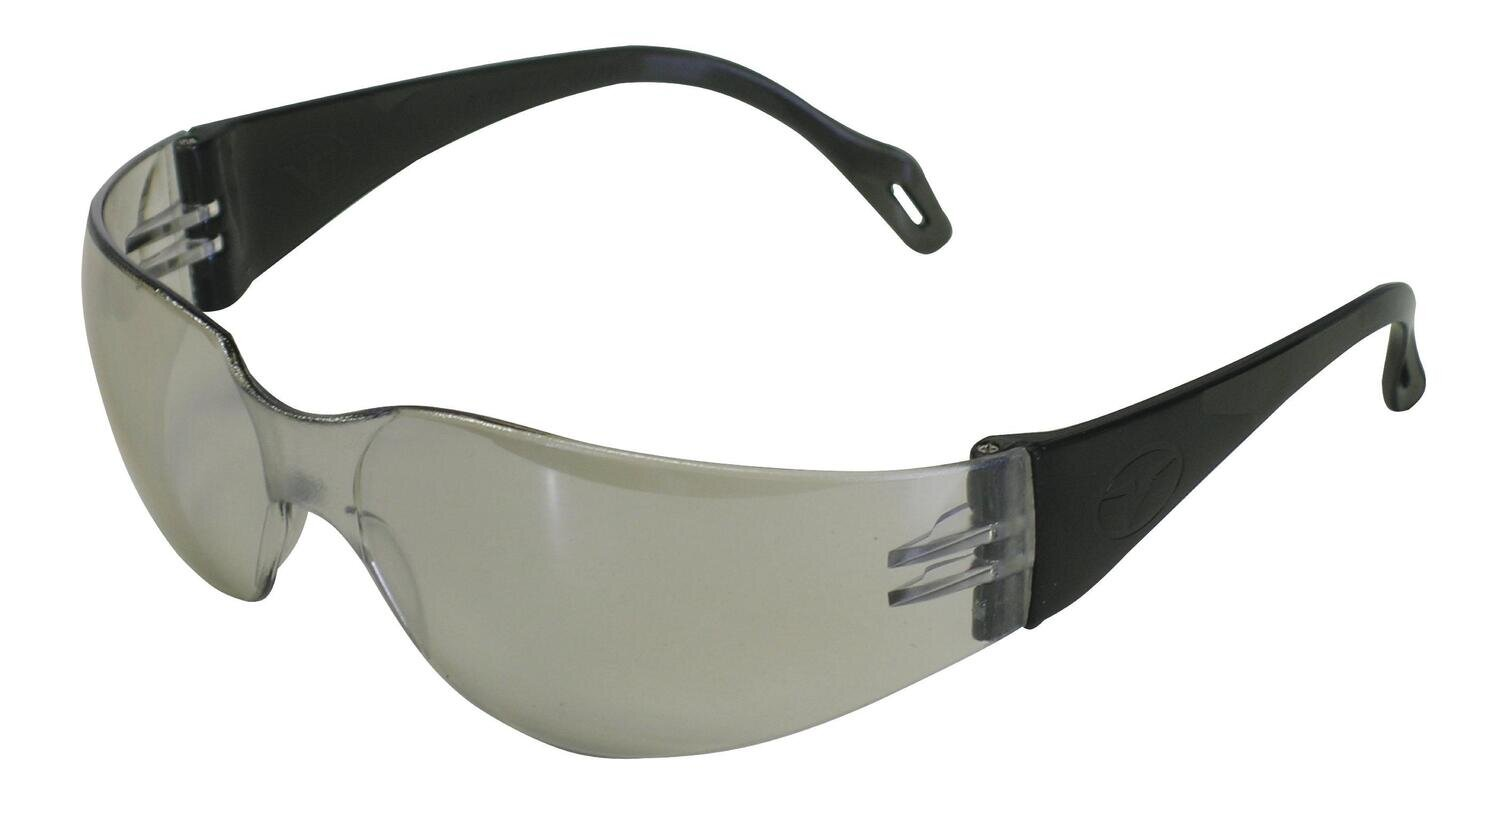 SGL5778774 - Veratti® 2000™ Safety Glasses - Gray Frame Indoor/Outdoor Lens